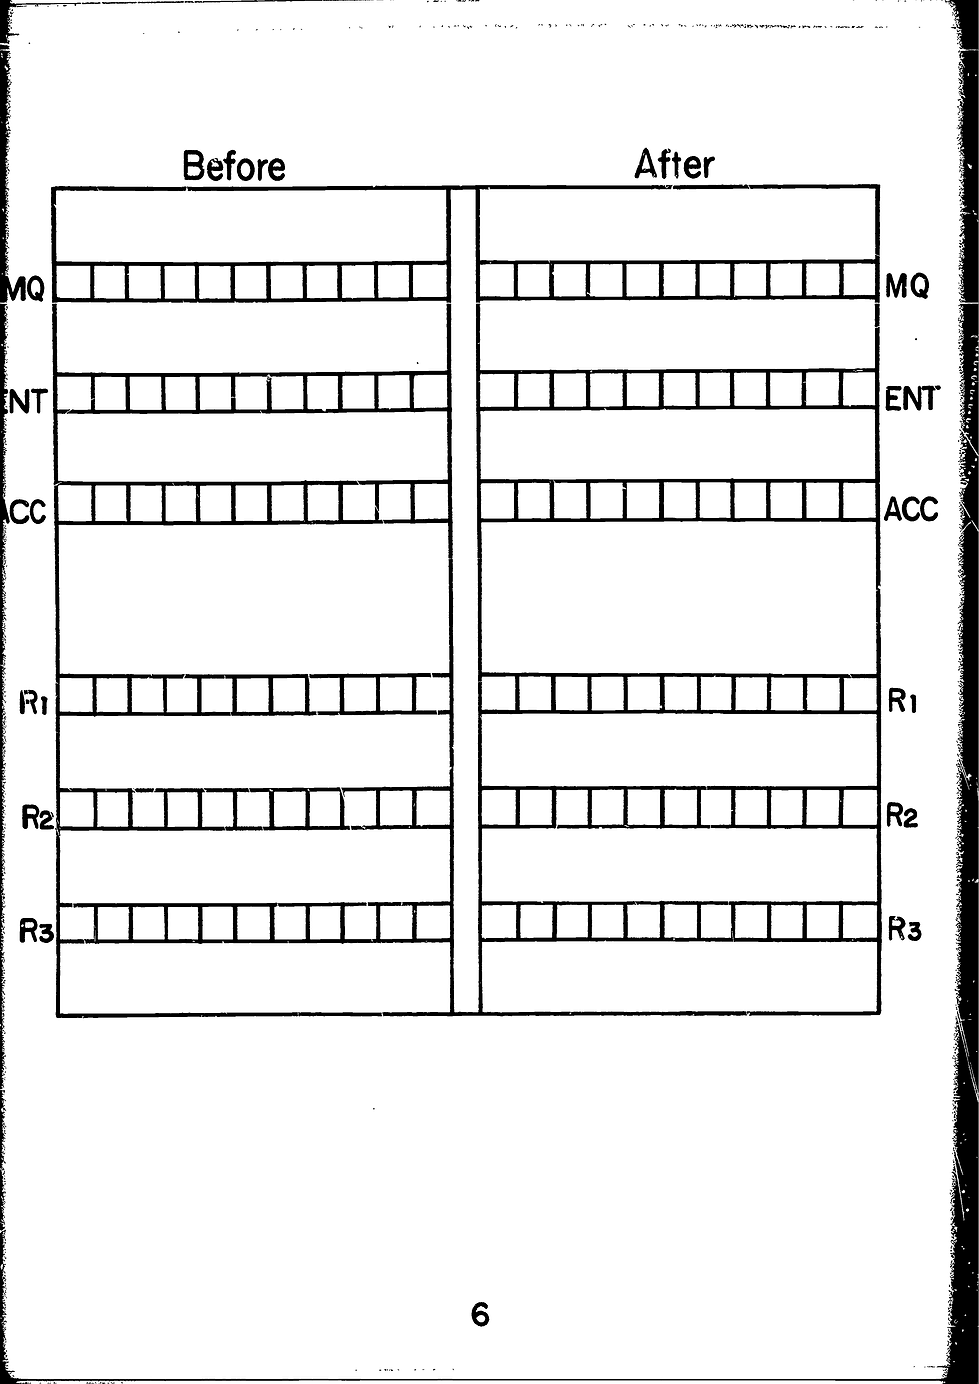 WYLE Instruction_Page_094_Image_0001.tif